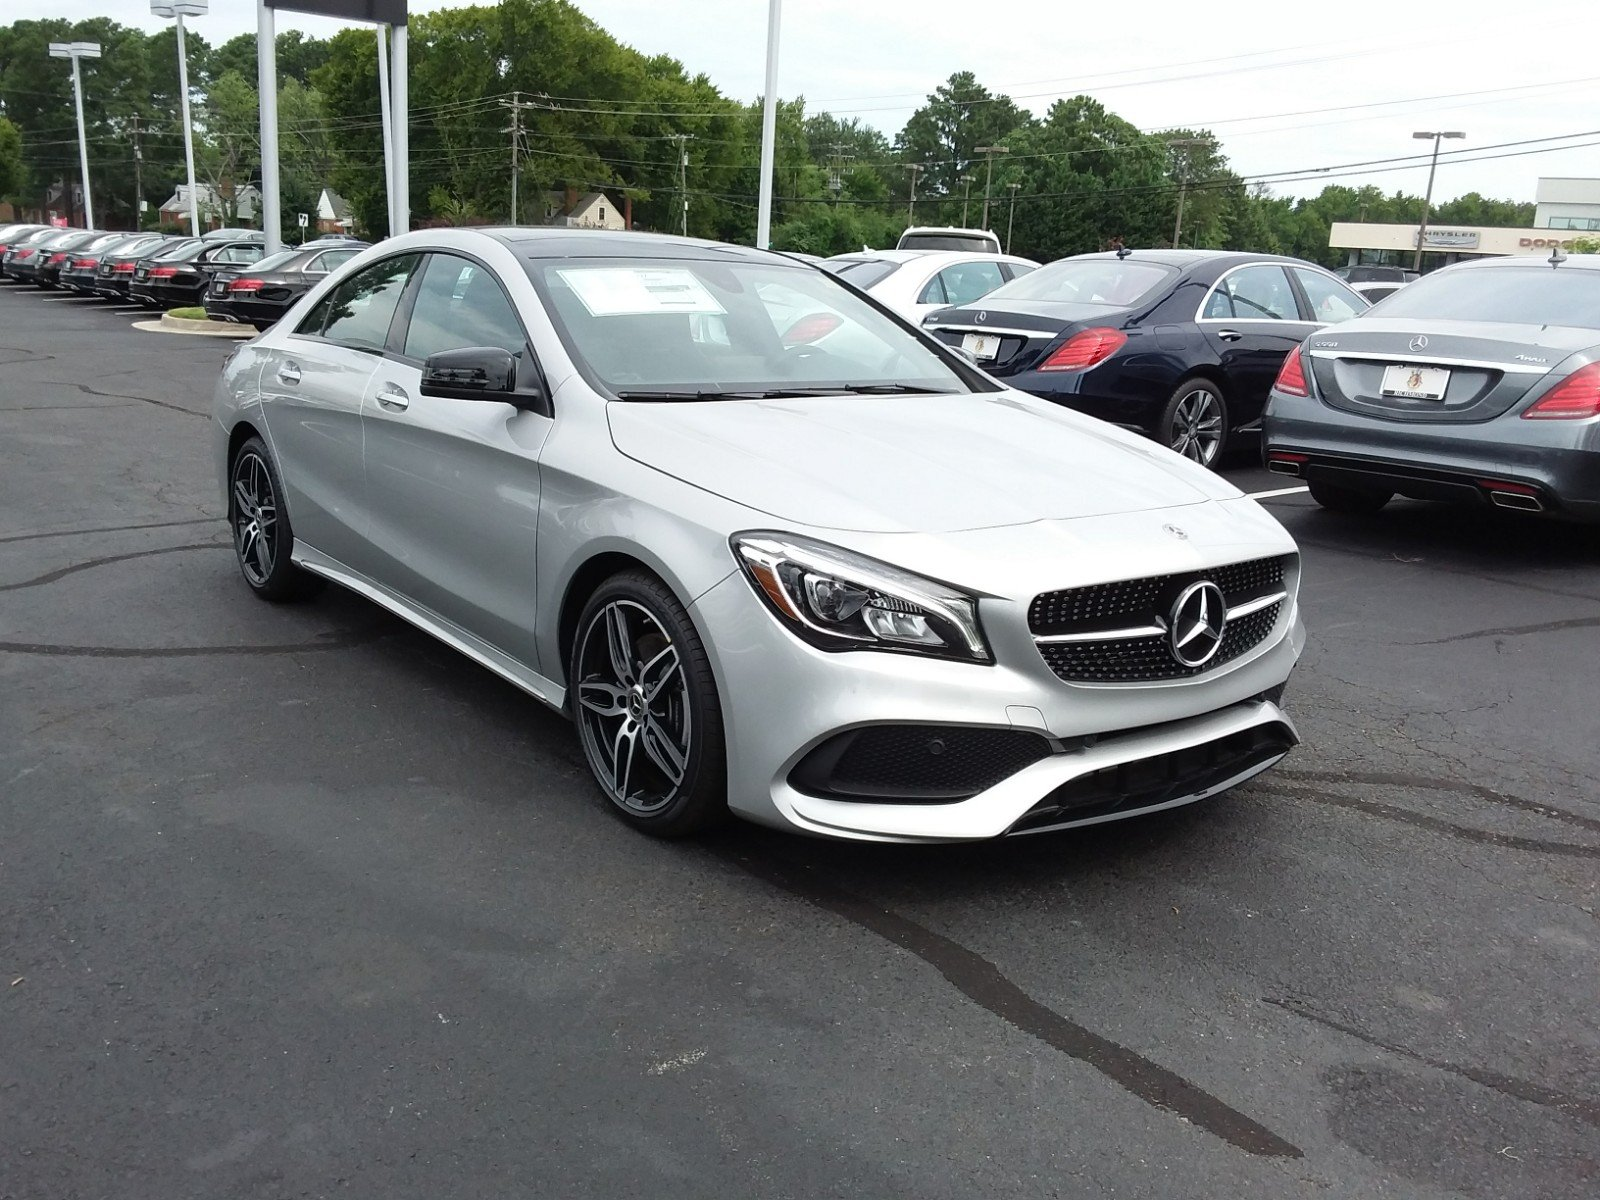 pre owned 2019 mercedes benz cla cla 250 coupe in richmond 93009 mercedes benz of richmond. Black Bedroom Furniture Sets. Home Design Ideas